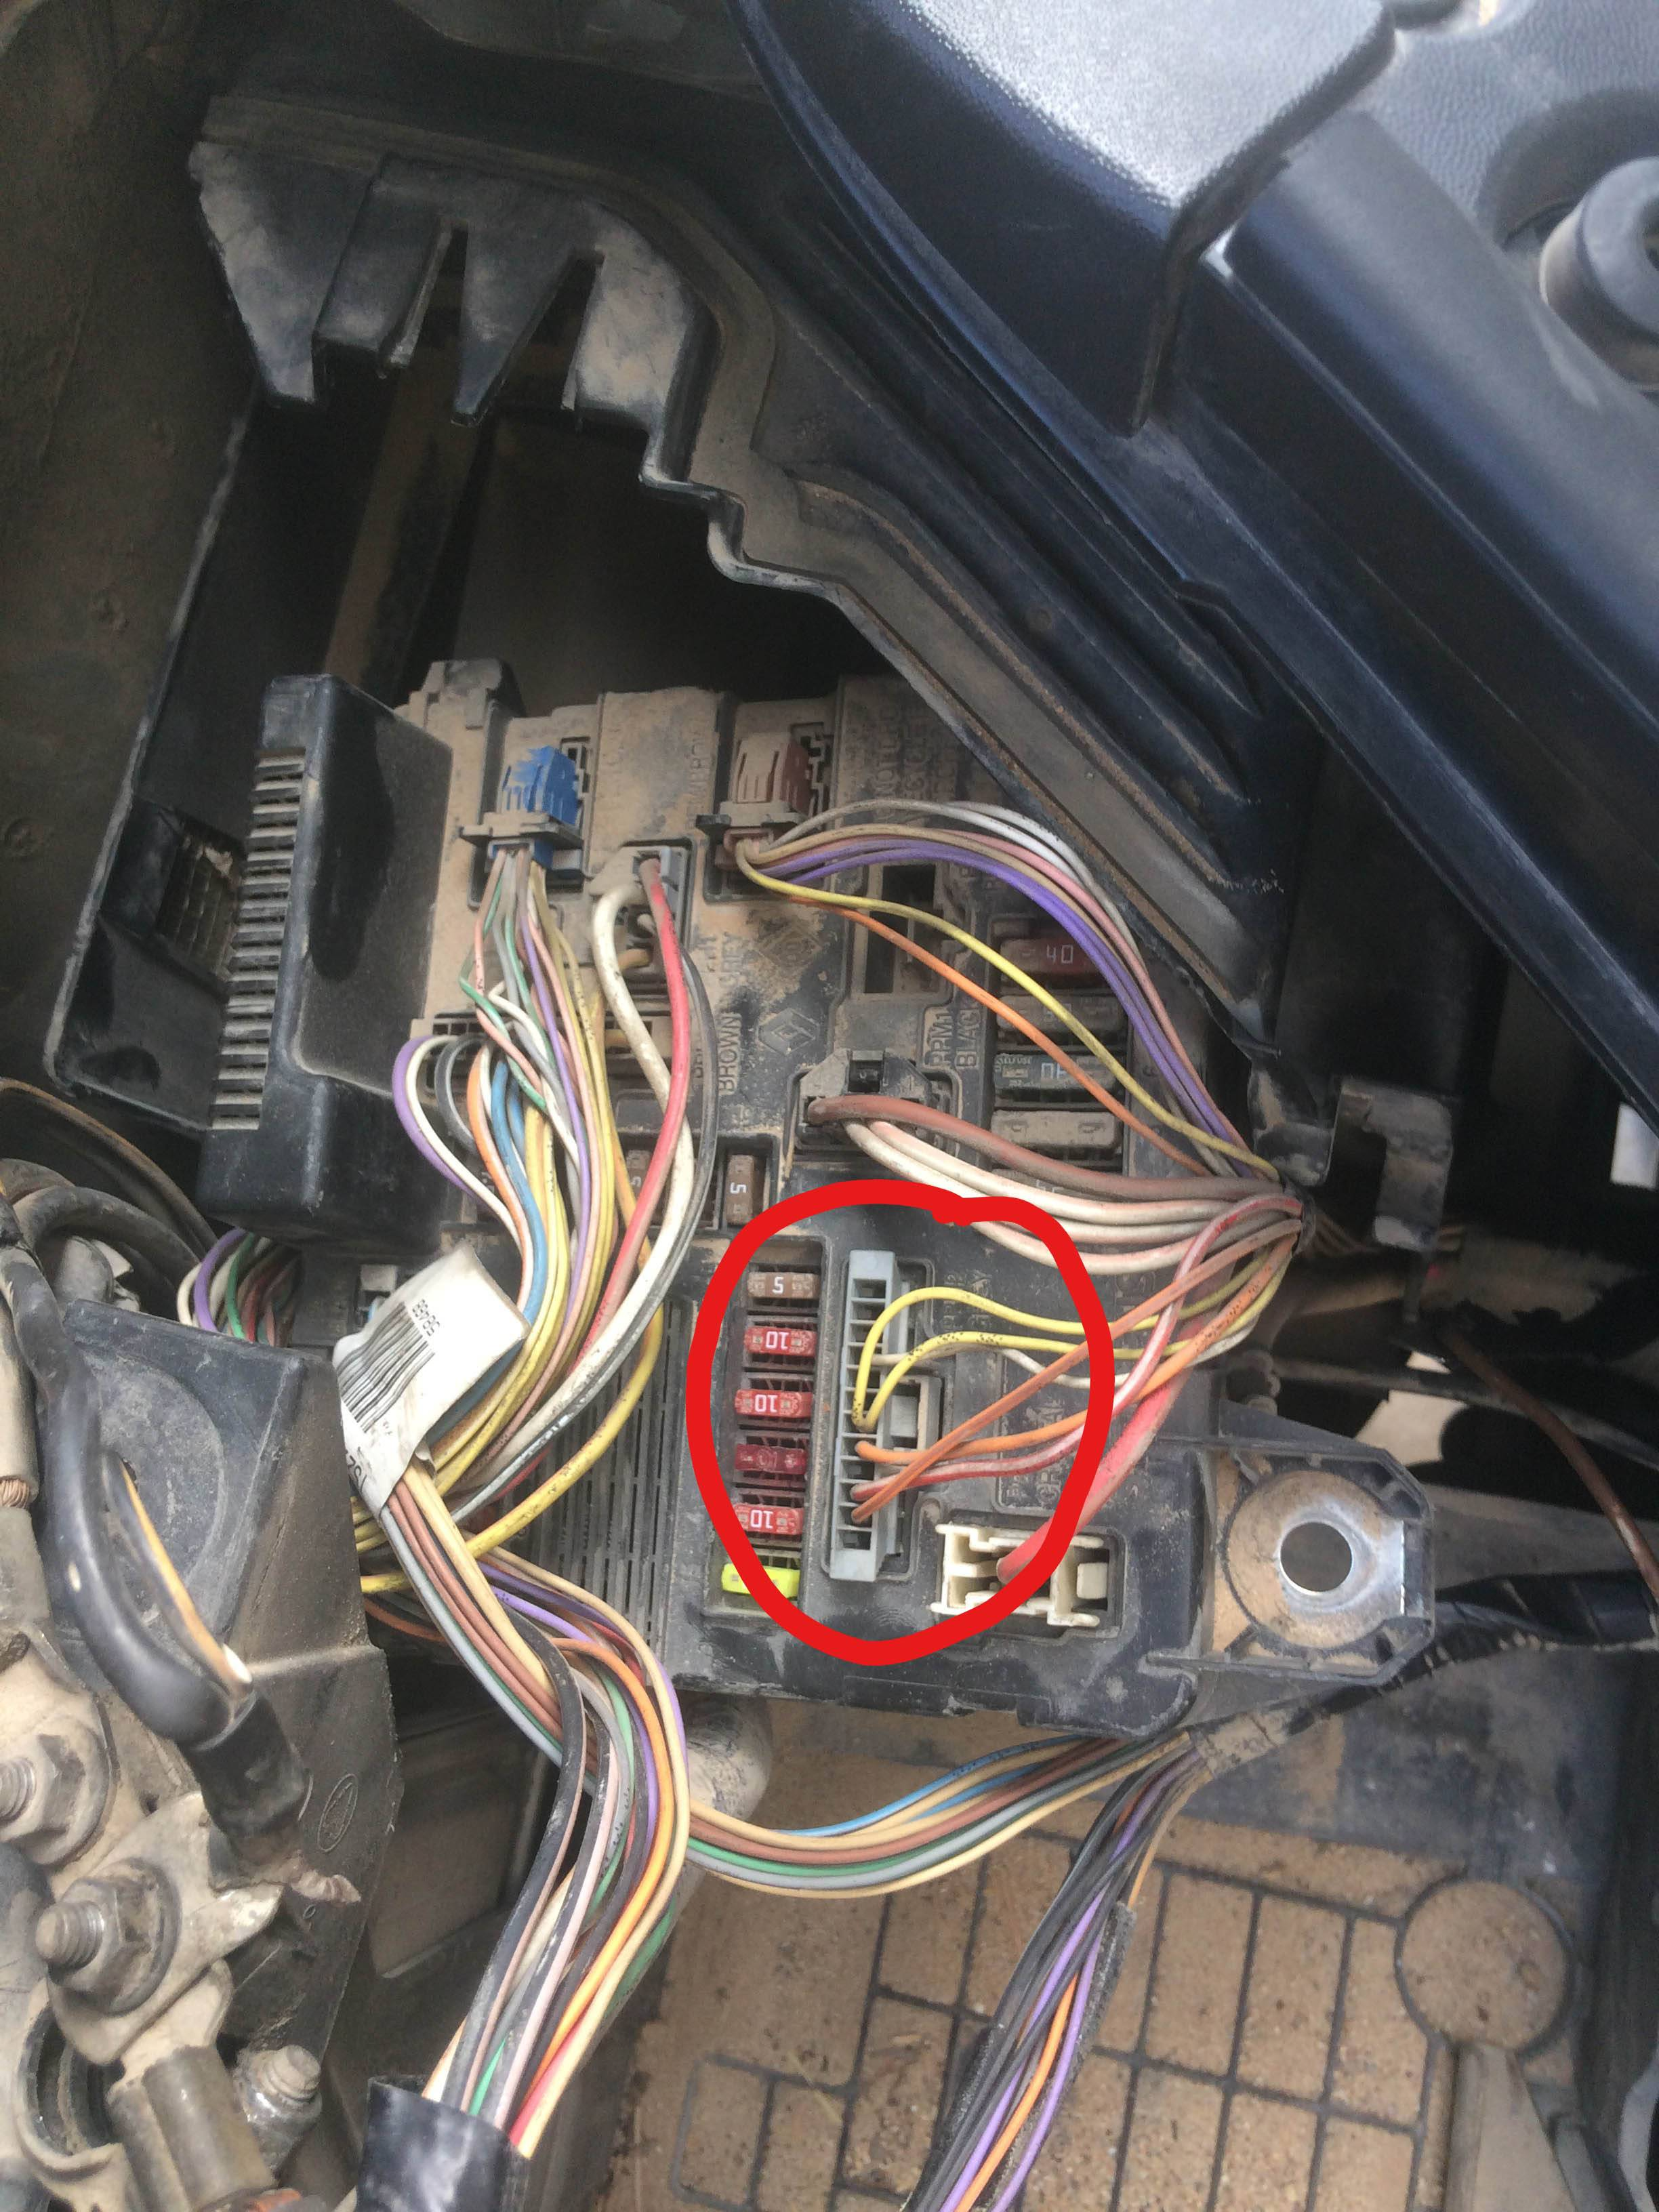 renault megane wiring diagram automobile ac electrical - scenic ii 1.9 dci, model 2004 facing start problem! motor vehicle ...